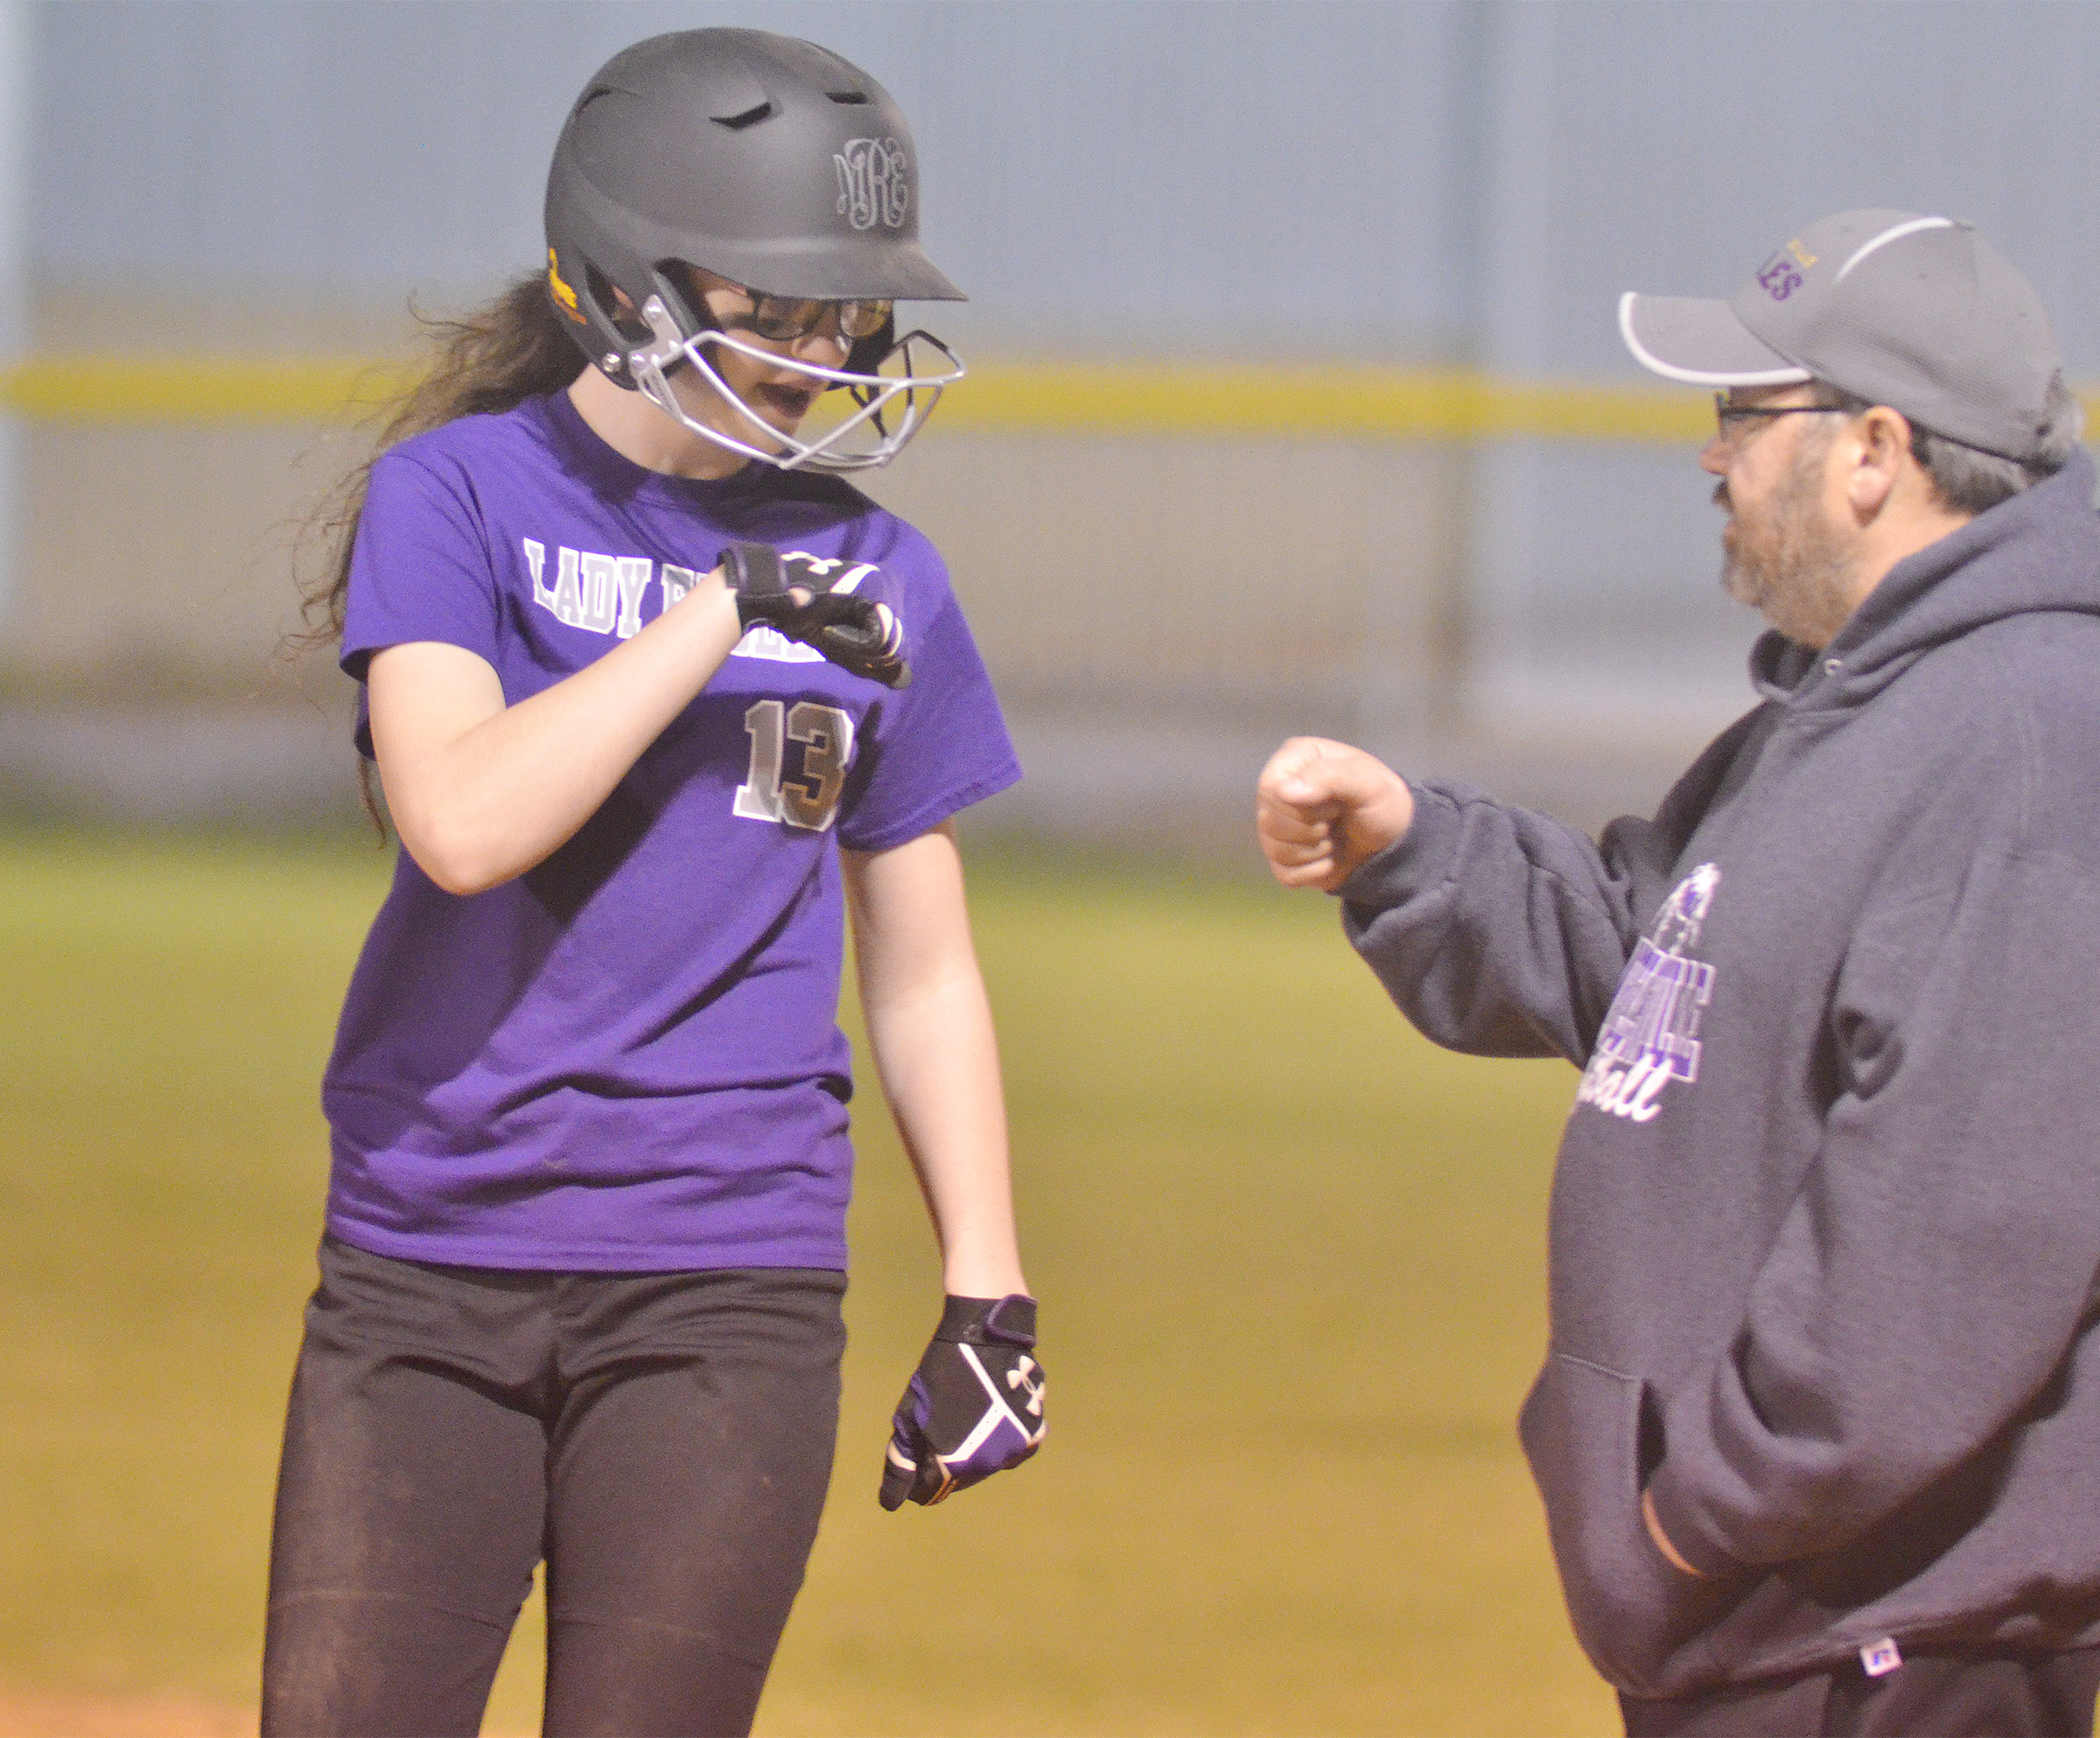 CMS sixth-grader Mary Russell bumps fists with assistant coach Joey Fields after getting a hit.